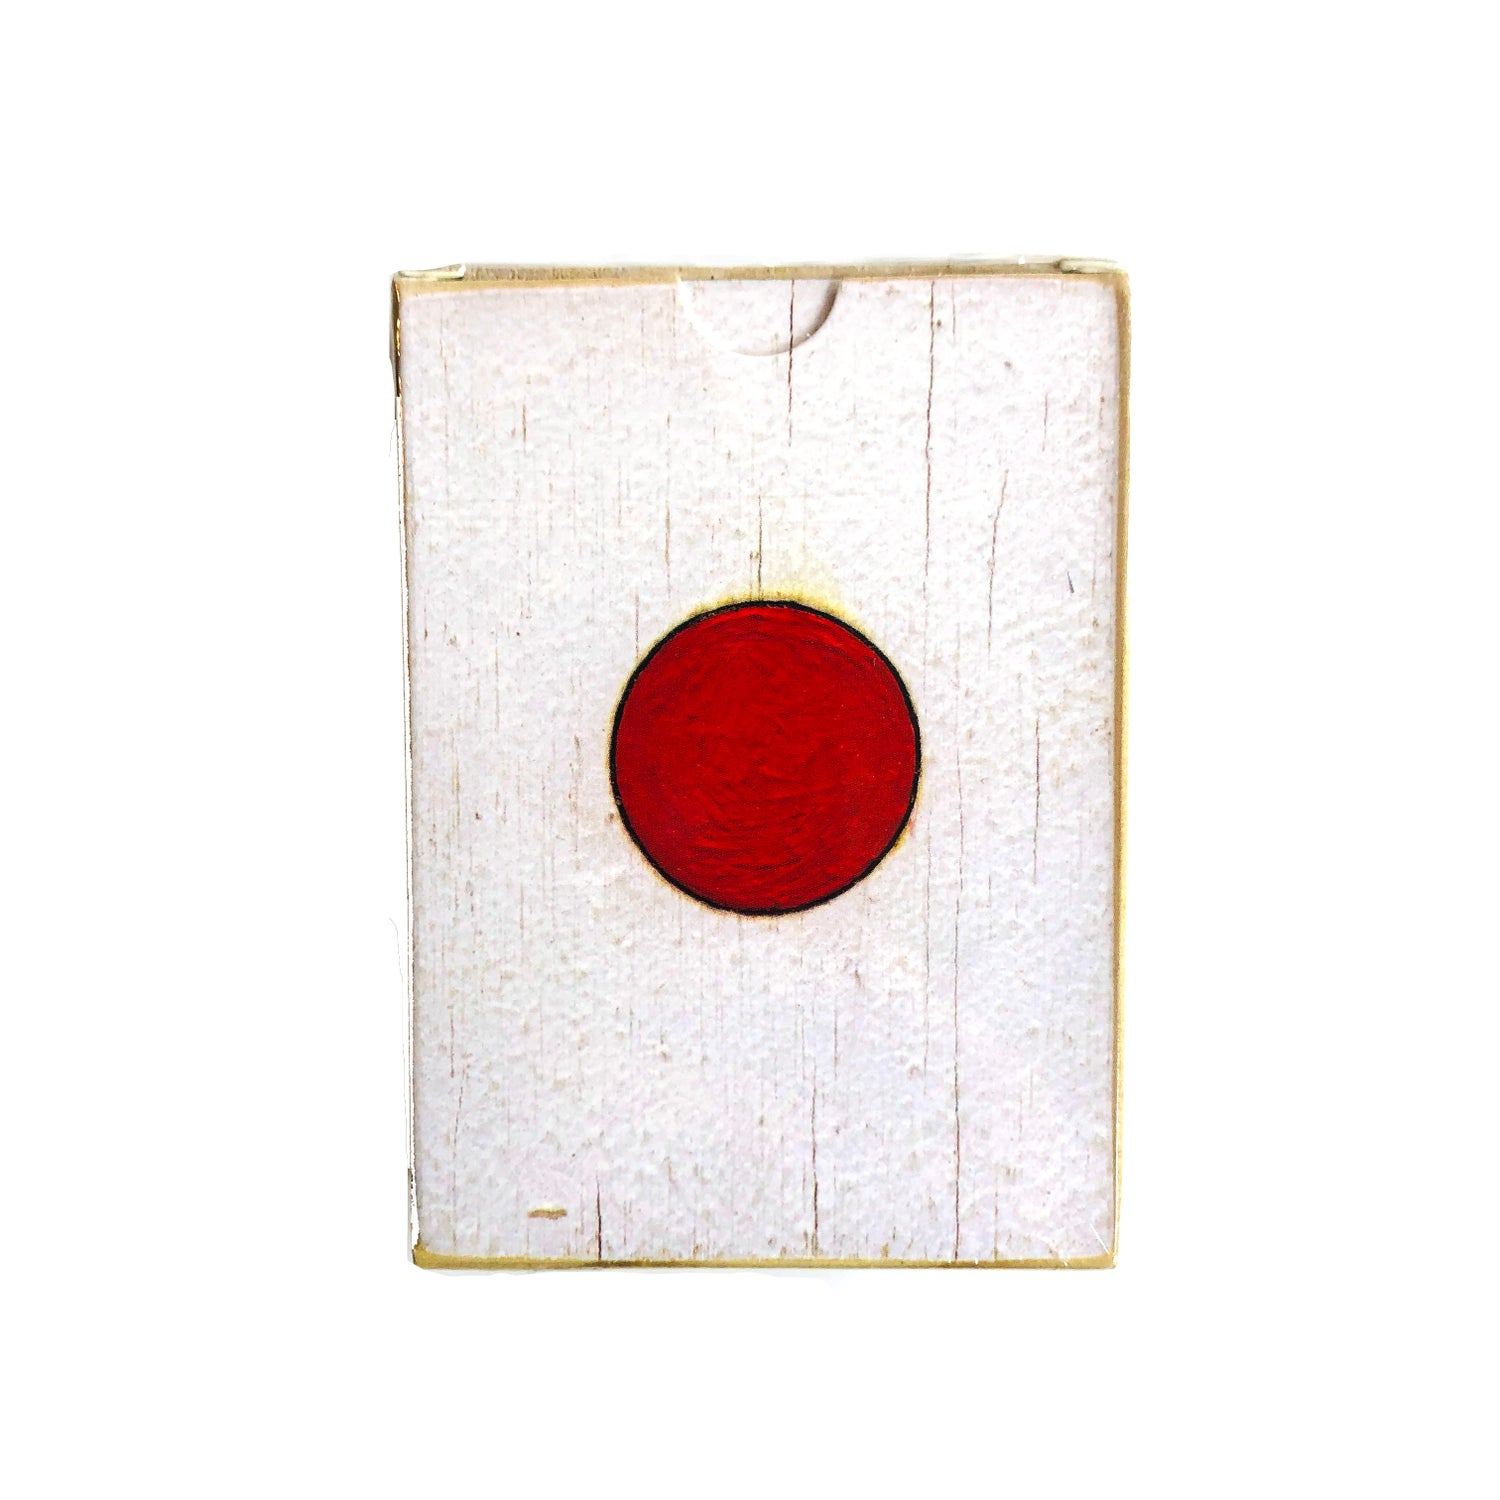 Image of Tom Sachs Japan Deck (White Plywood 2019 Edition) Playing Cards